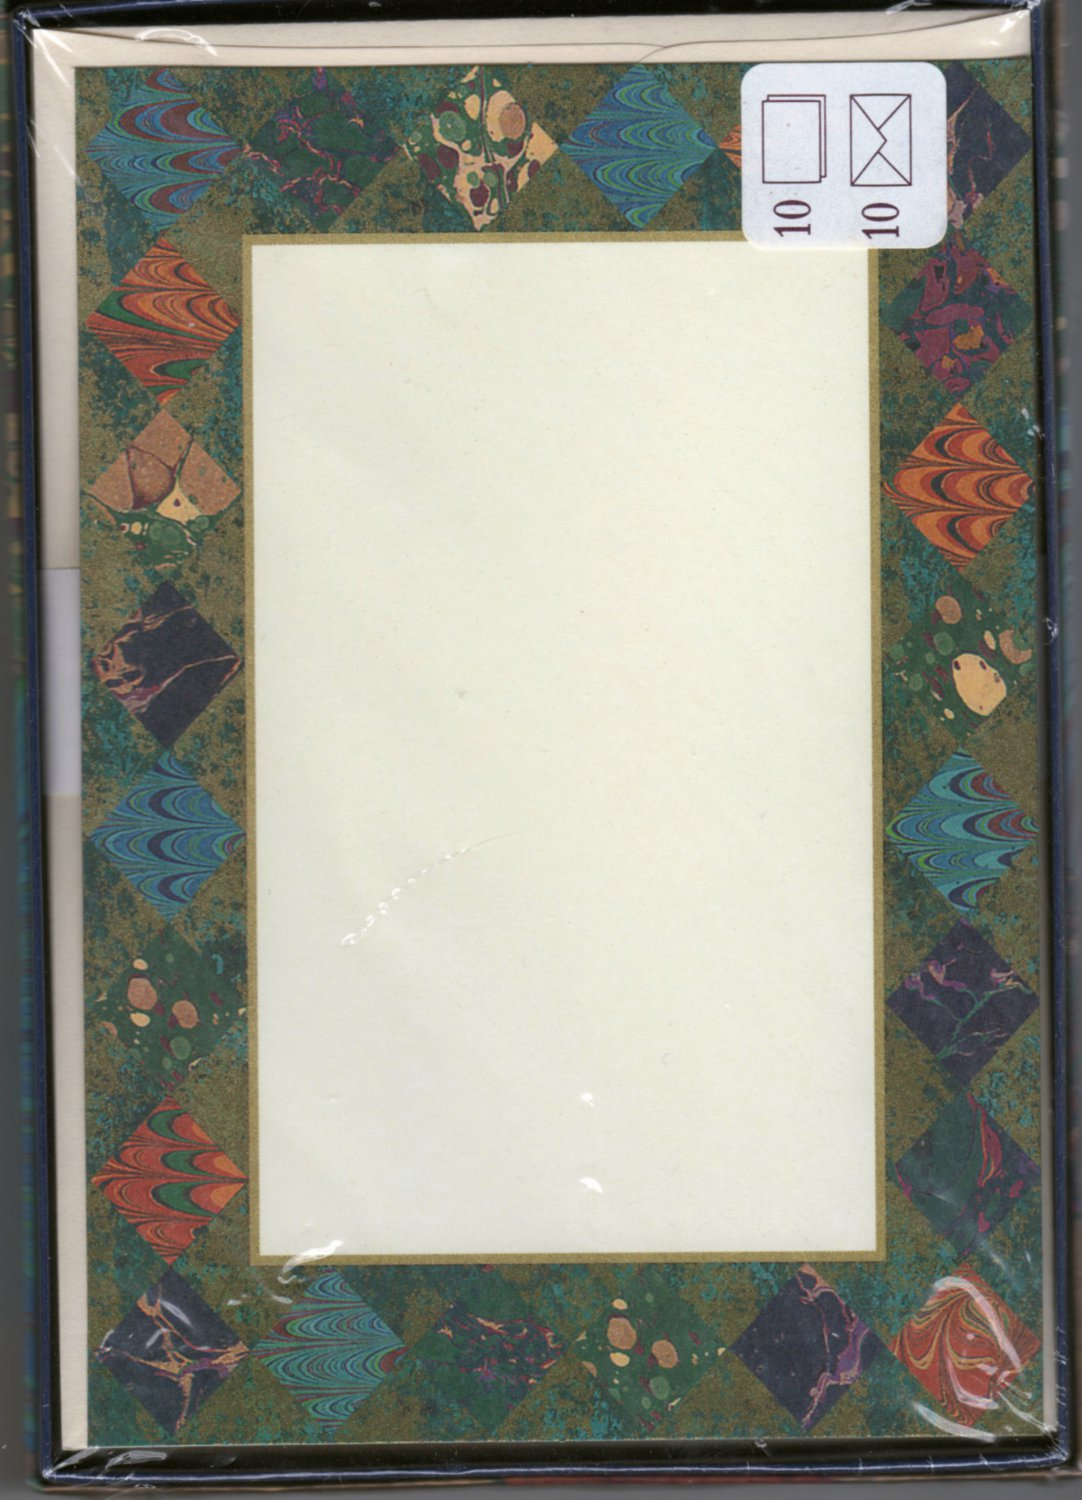 Modern Correspondence Single-Panel Note Cards Hallmark Stationery - 10 Vintage 1990